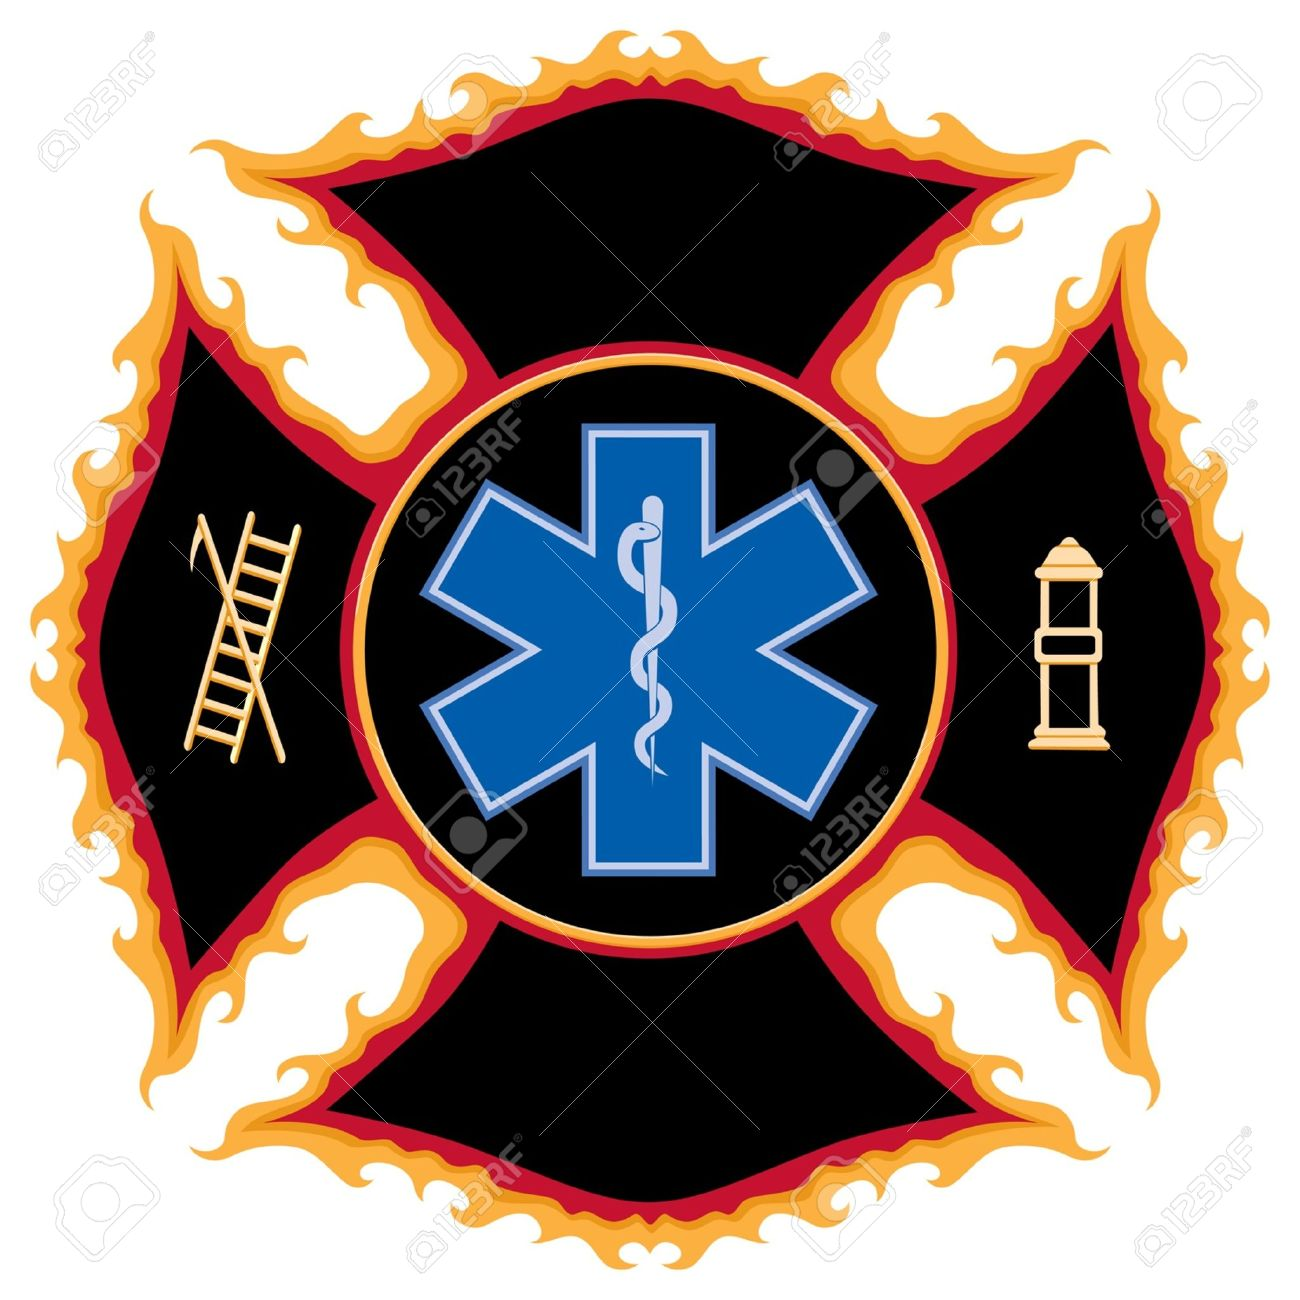 flaming fire and rescue maltese cross symbol royalty free cliparts rh 123rf com